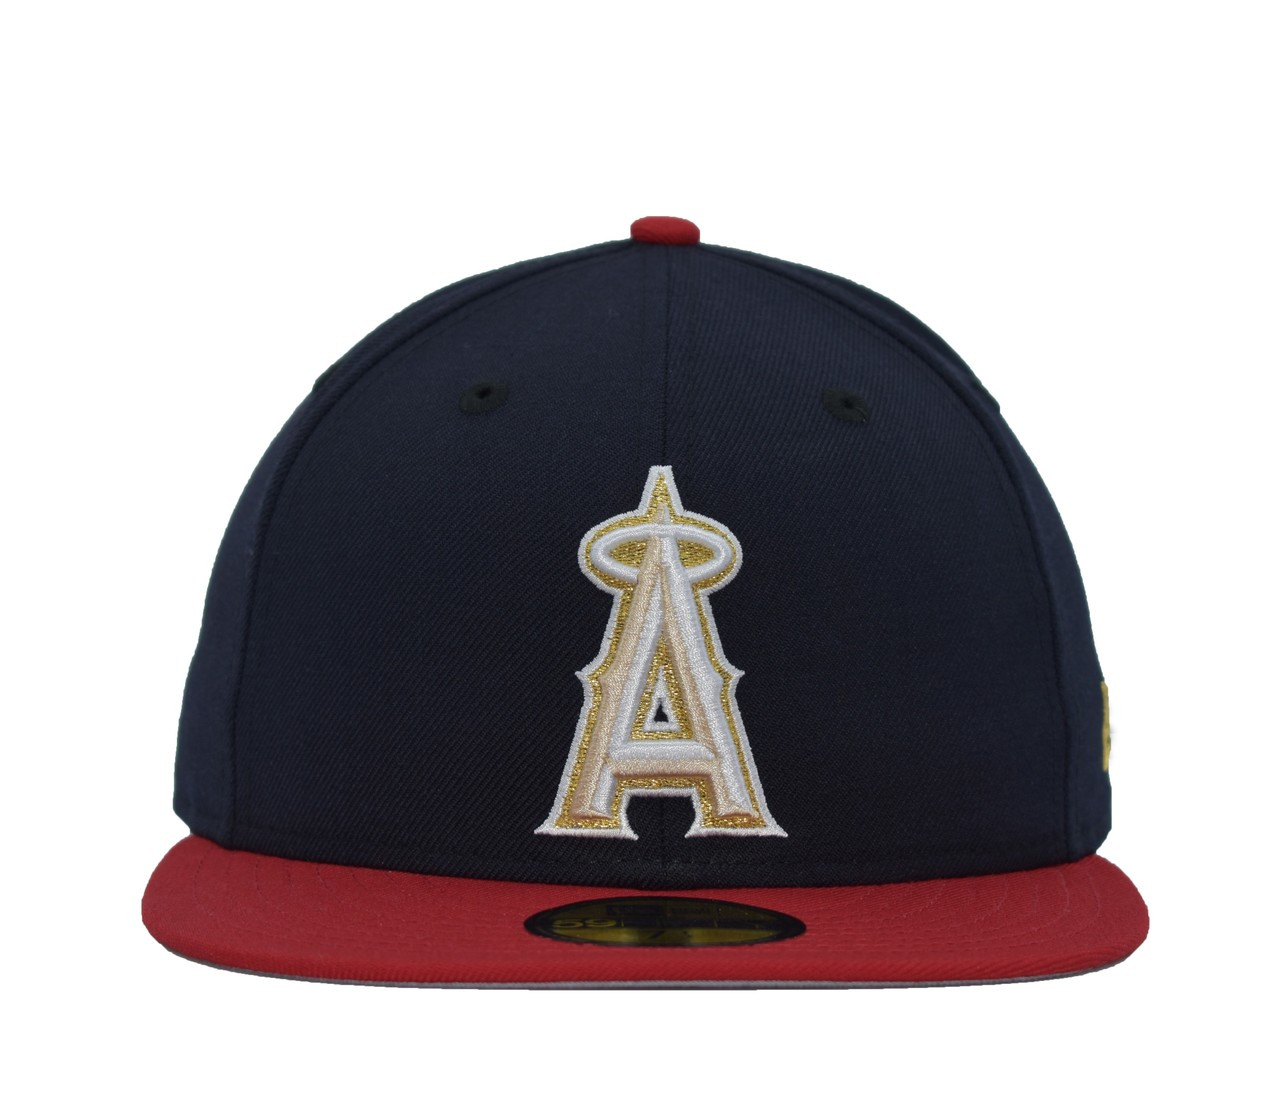 cf1b4476 Stripes 59fifty - HeadwearFitted - Los Angeles Angels - - Primary - Navy - New  Era